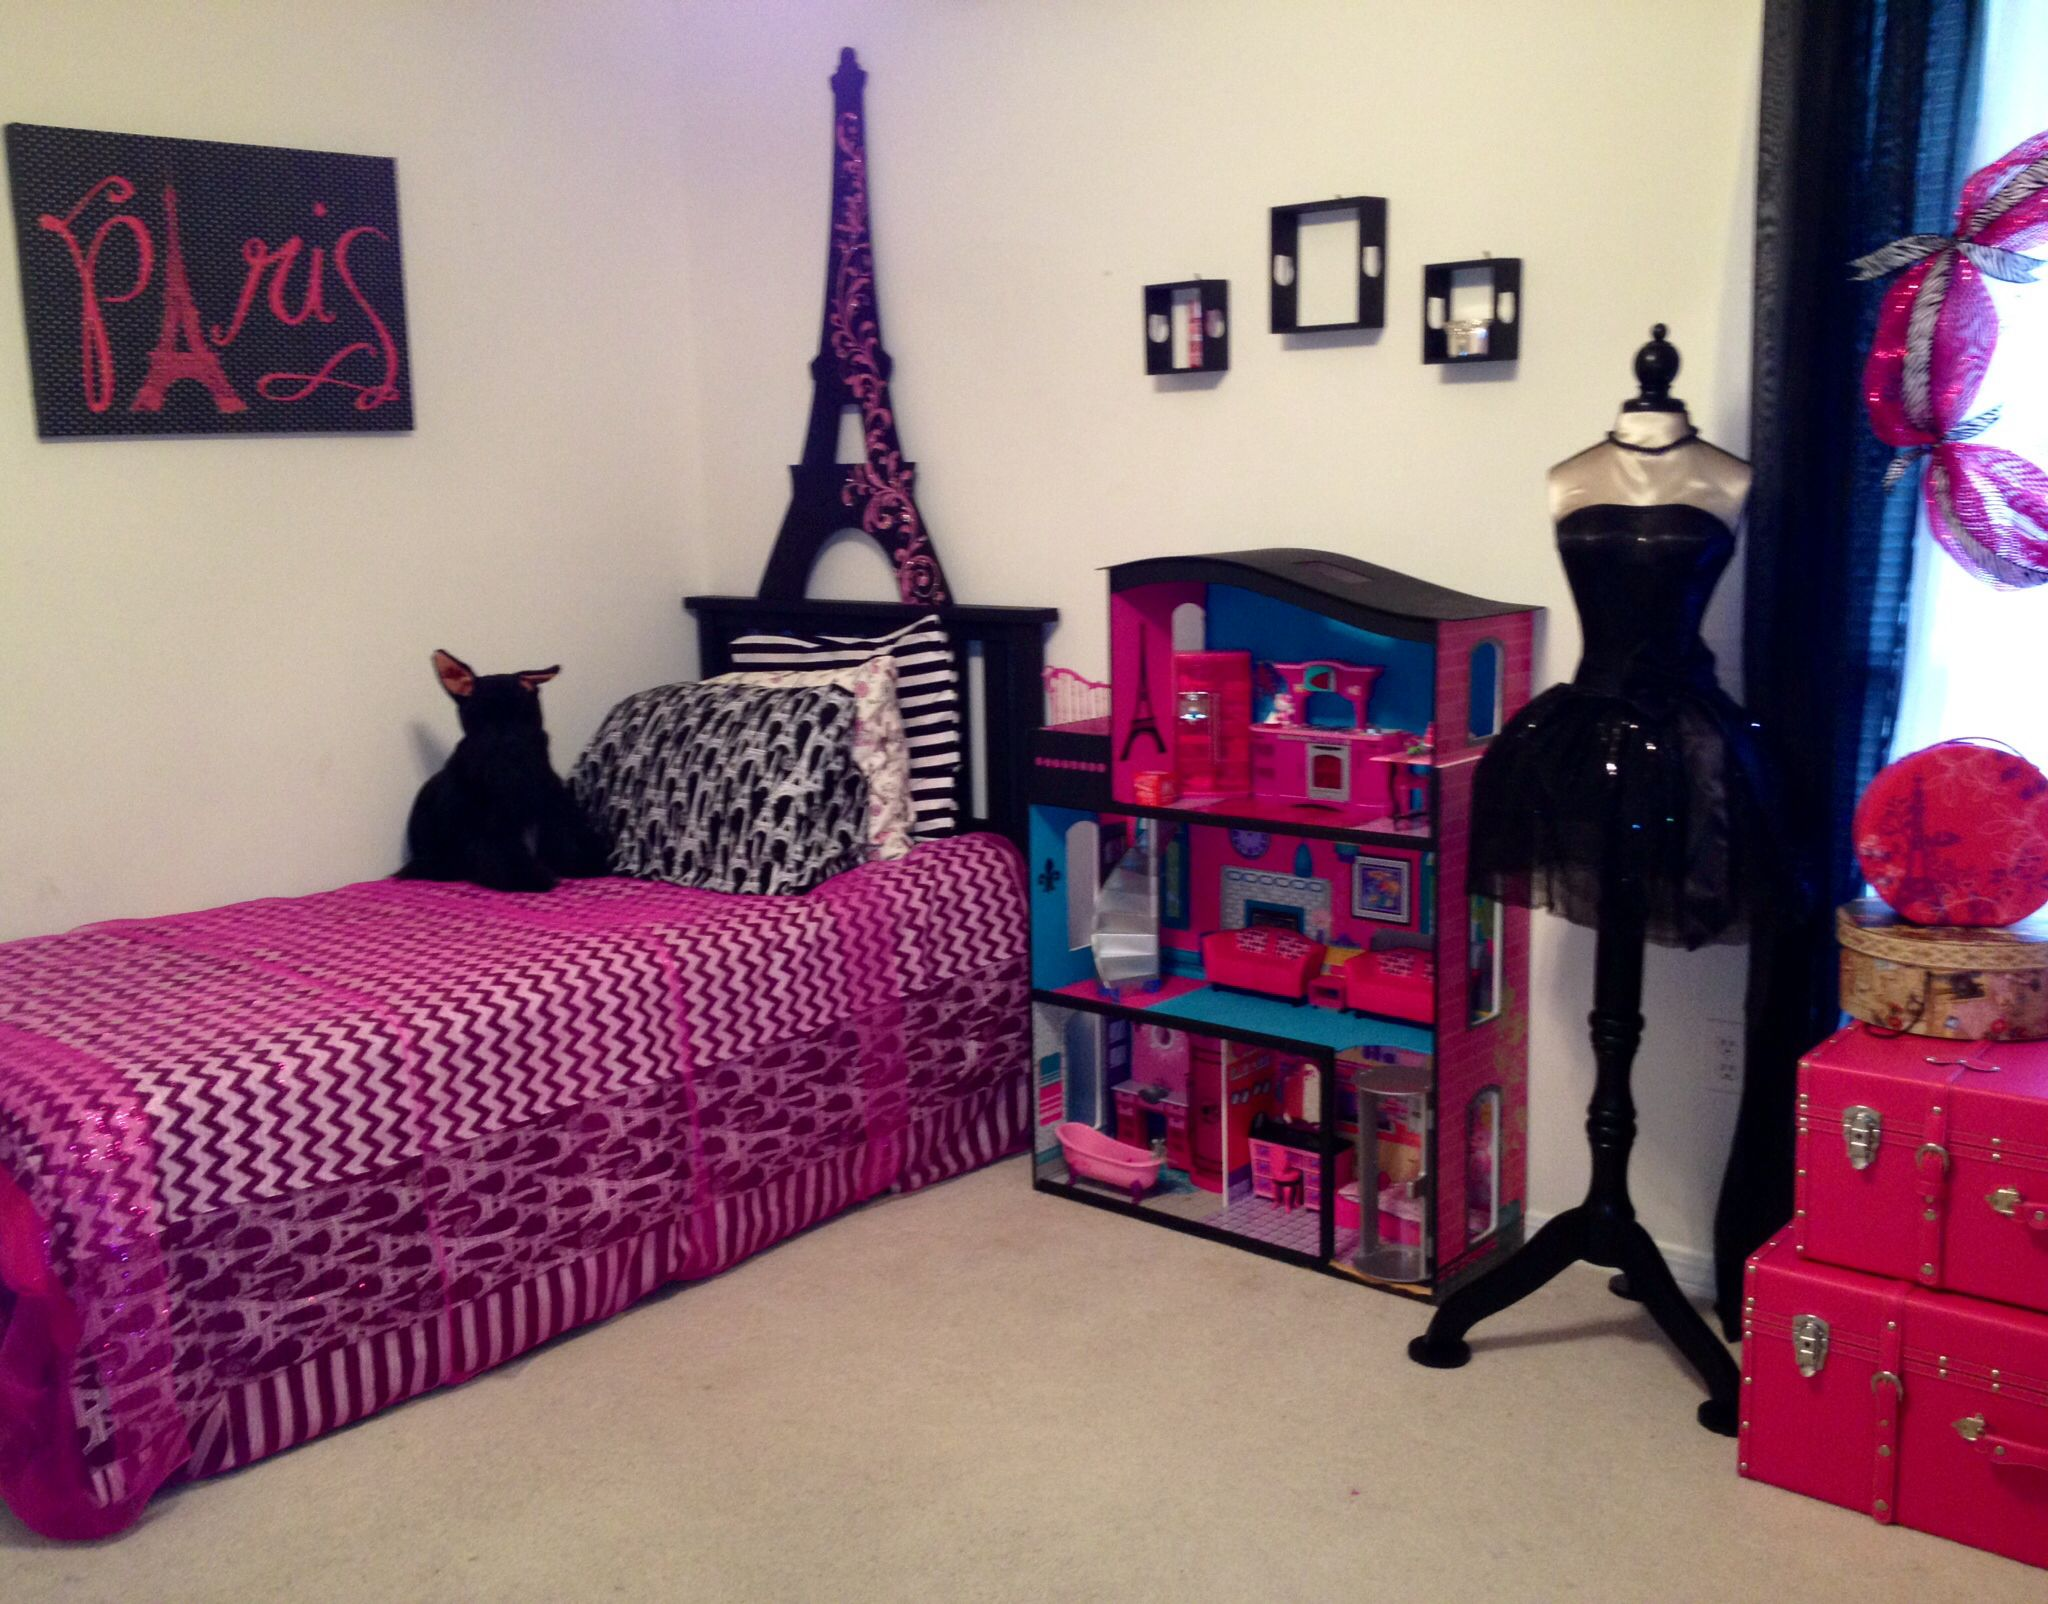 Little girls bedroom to 13 year olds dream room monster for Beds for 13 year olds